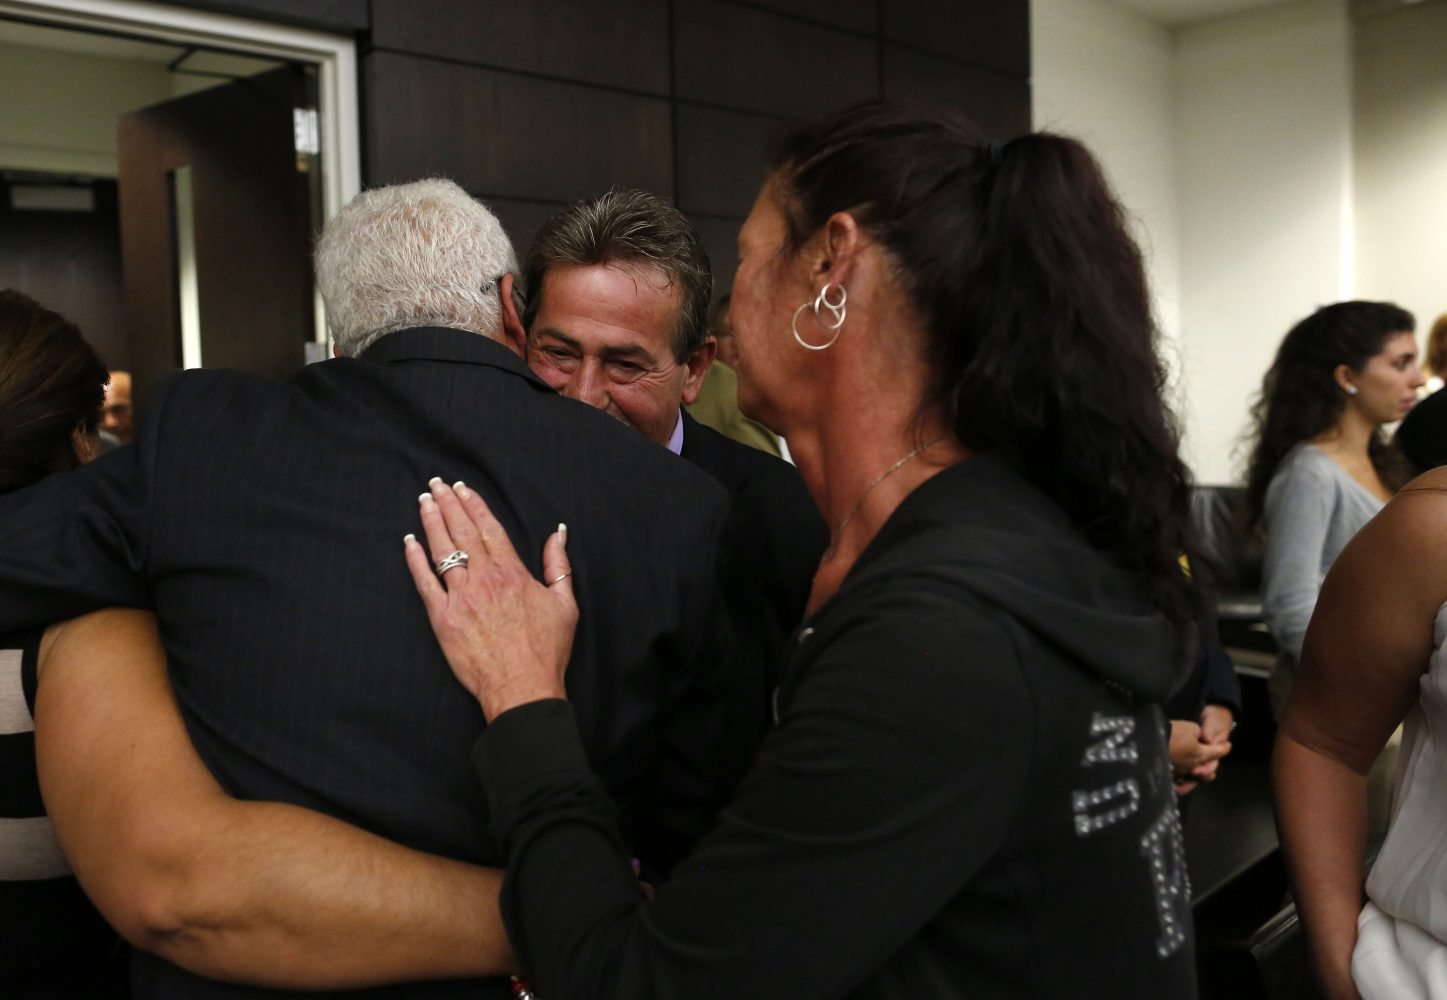 Lead detective Randy Roberts with the Gainesville Police Department, at center facing, hugs Carlos Aguilar, the father of slain University of Florida student Christian Aguilar, after Christian's killer Pedro Bravo was found guilty of first degree murder in courtroom 1B of the Alachua County Criminal Justice Center Friday, August 15, 2014.   (Doug Finger/The Gainesville Sun/Pool)